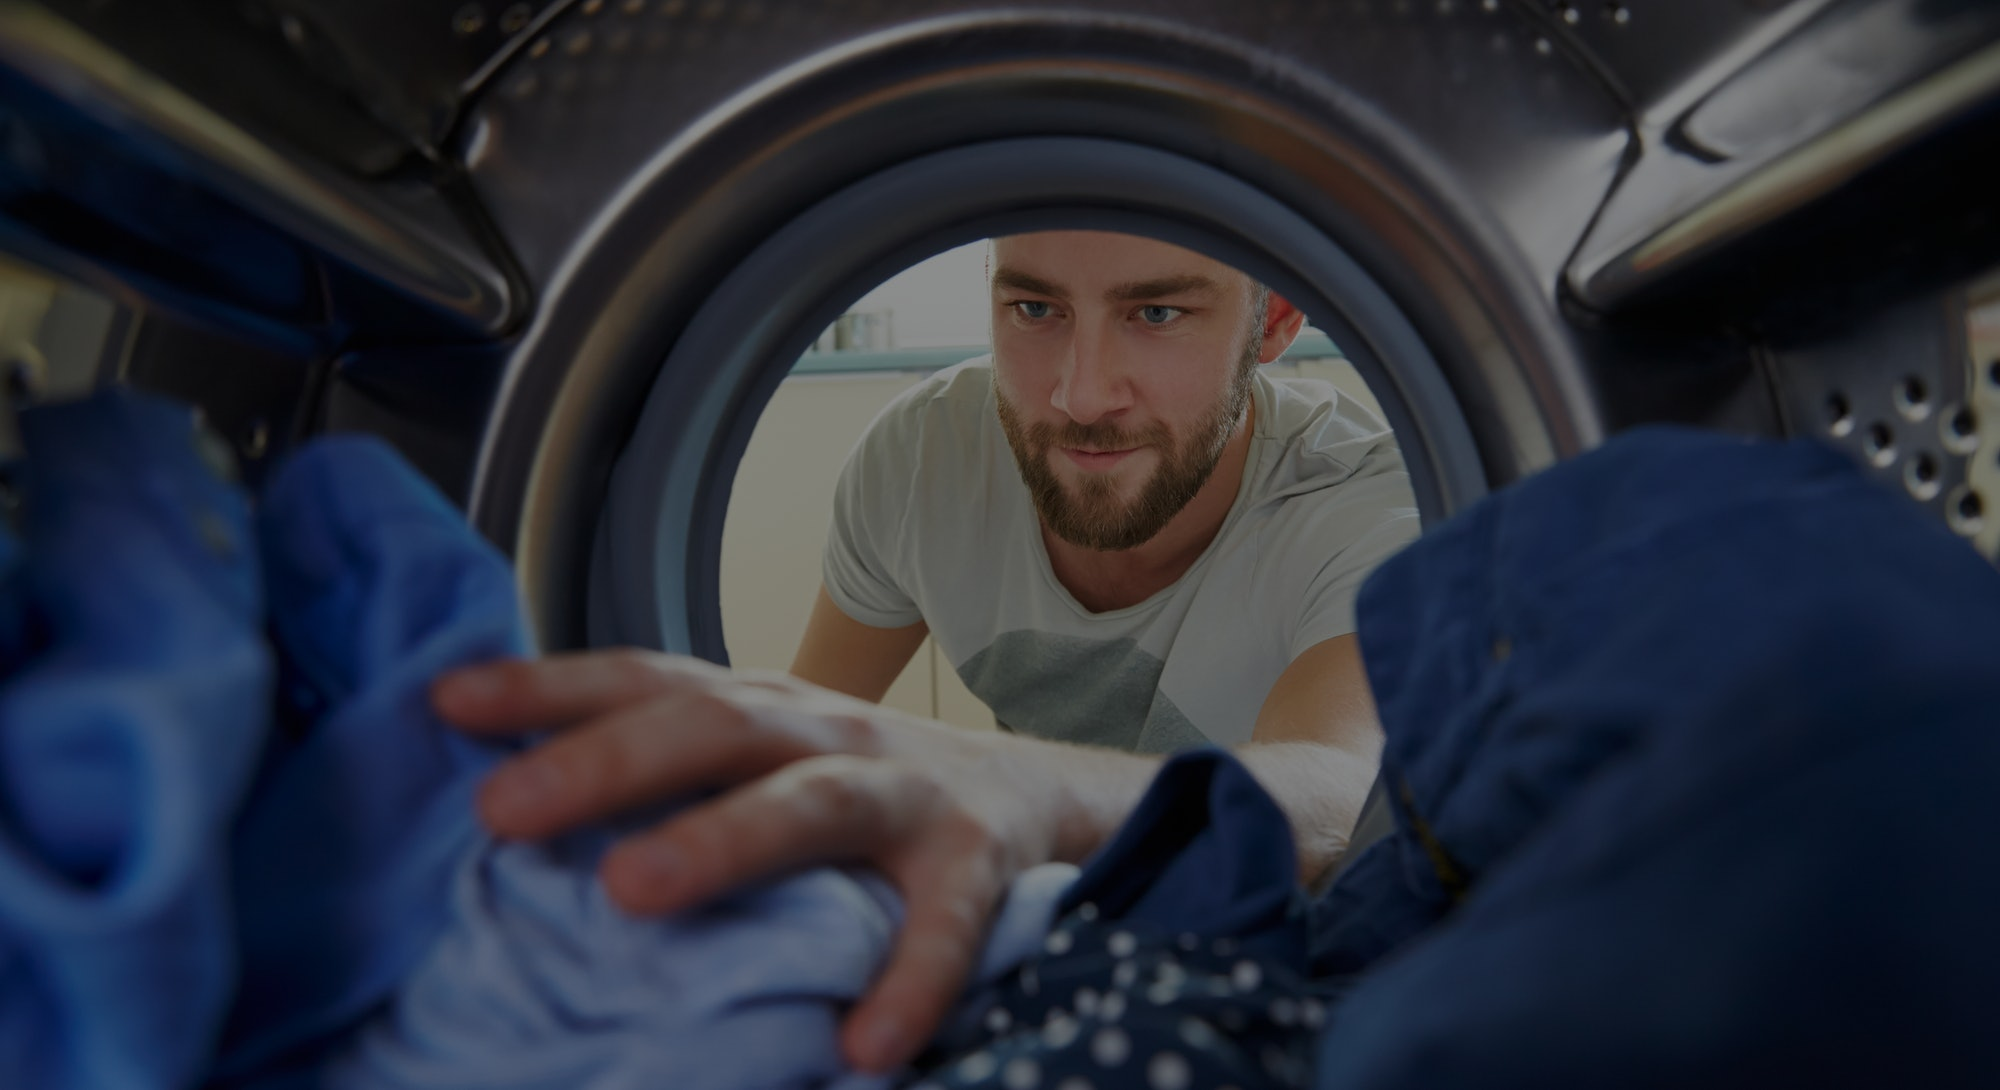 Man Doing Laundry Reaching Inside Washing Machine